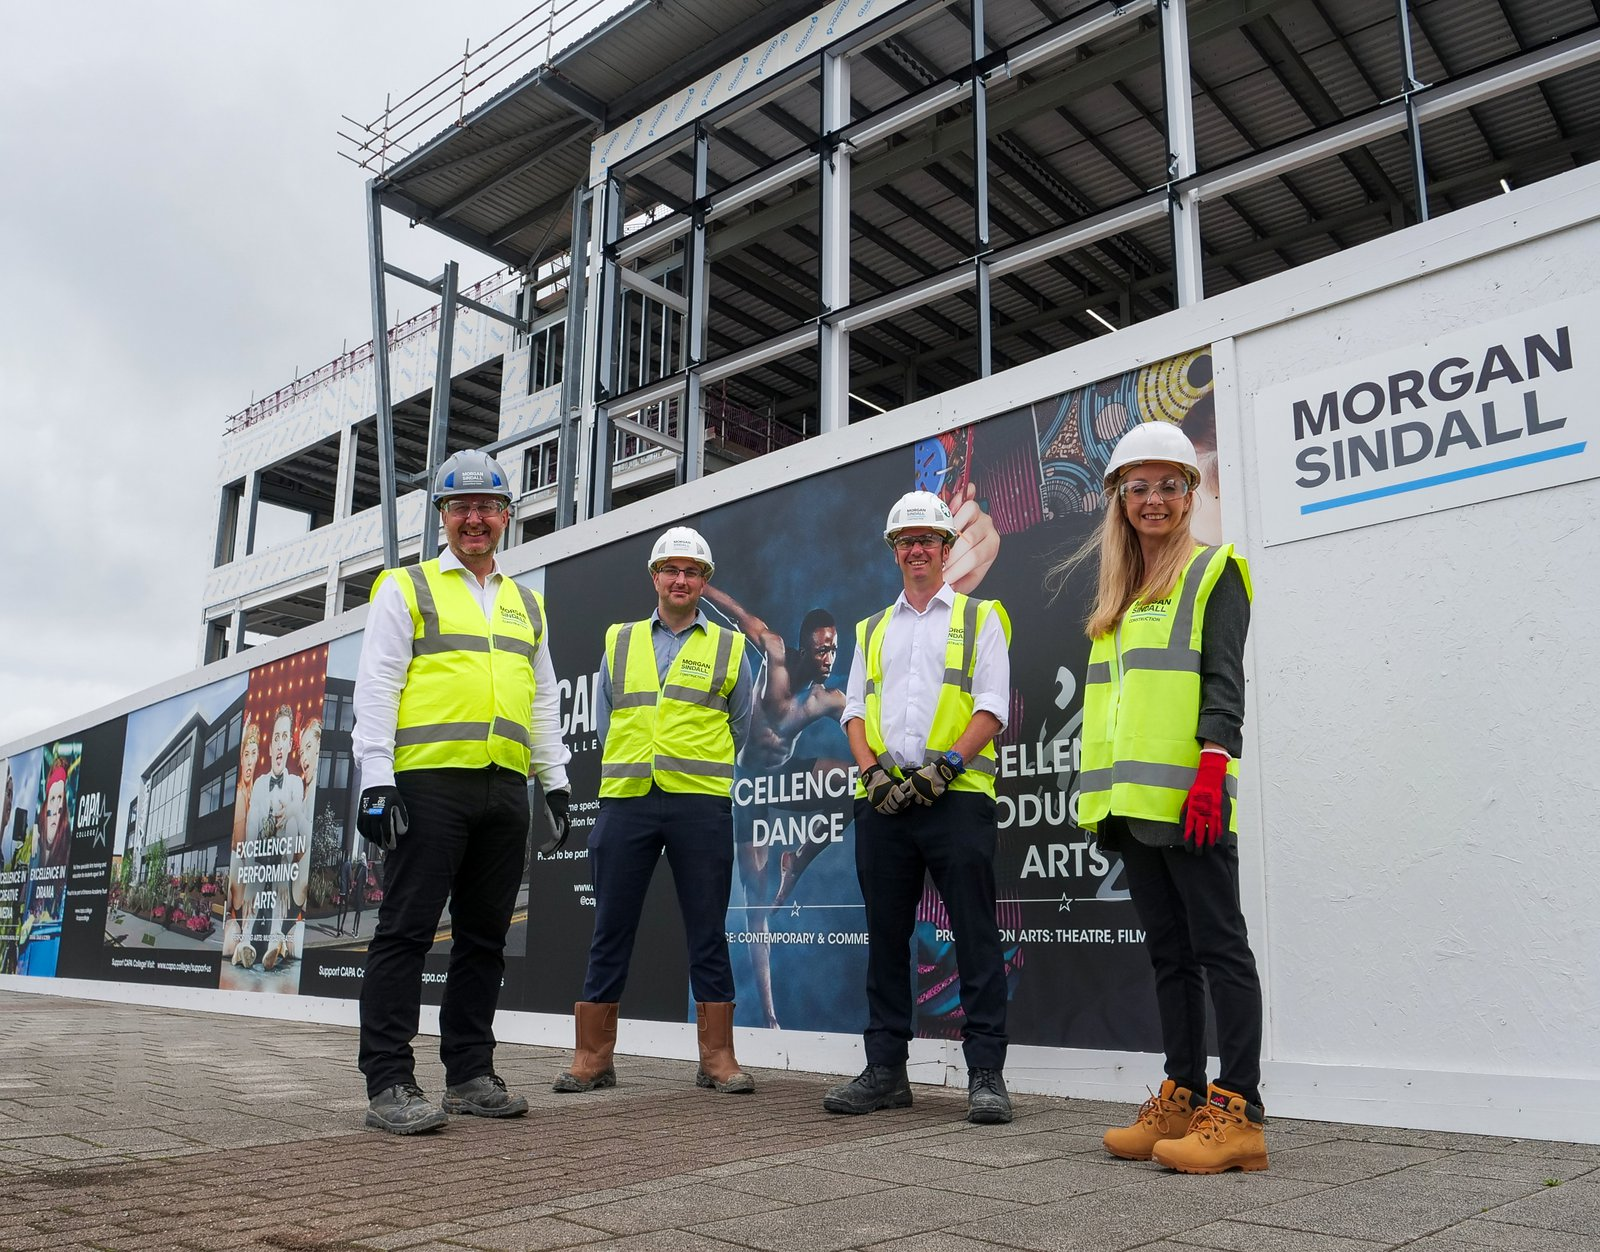 PIcture of Morgan Sindall Construction's groundbreaking event at CAPA College in Wakefield